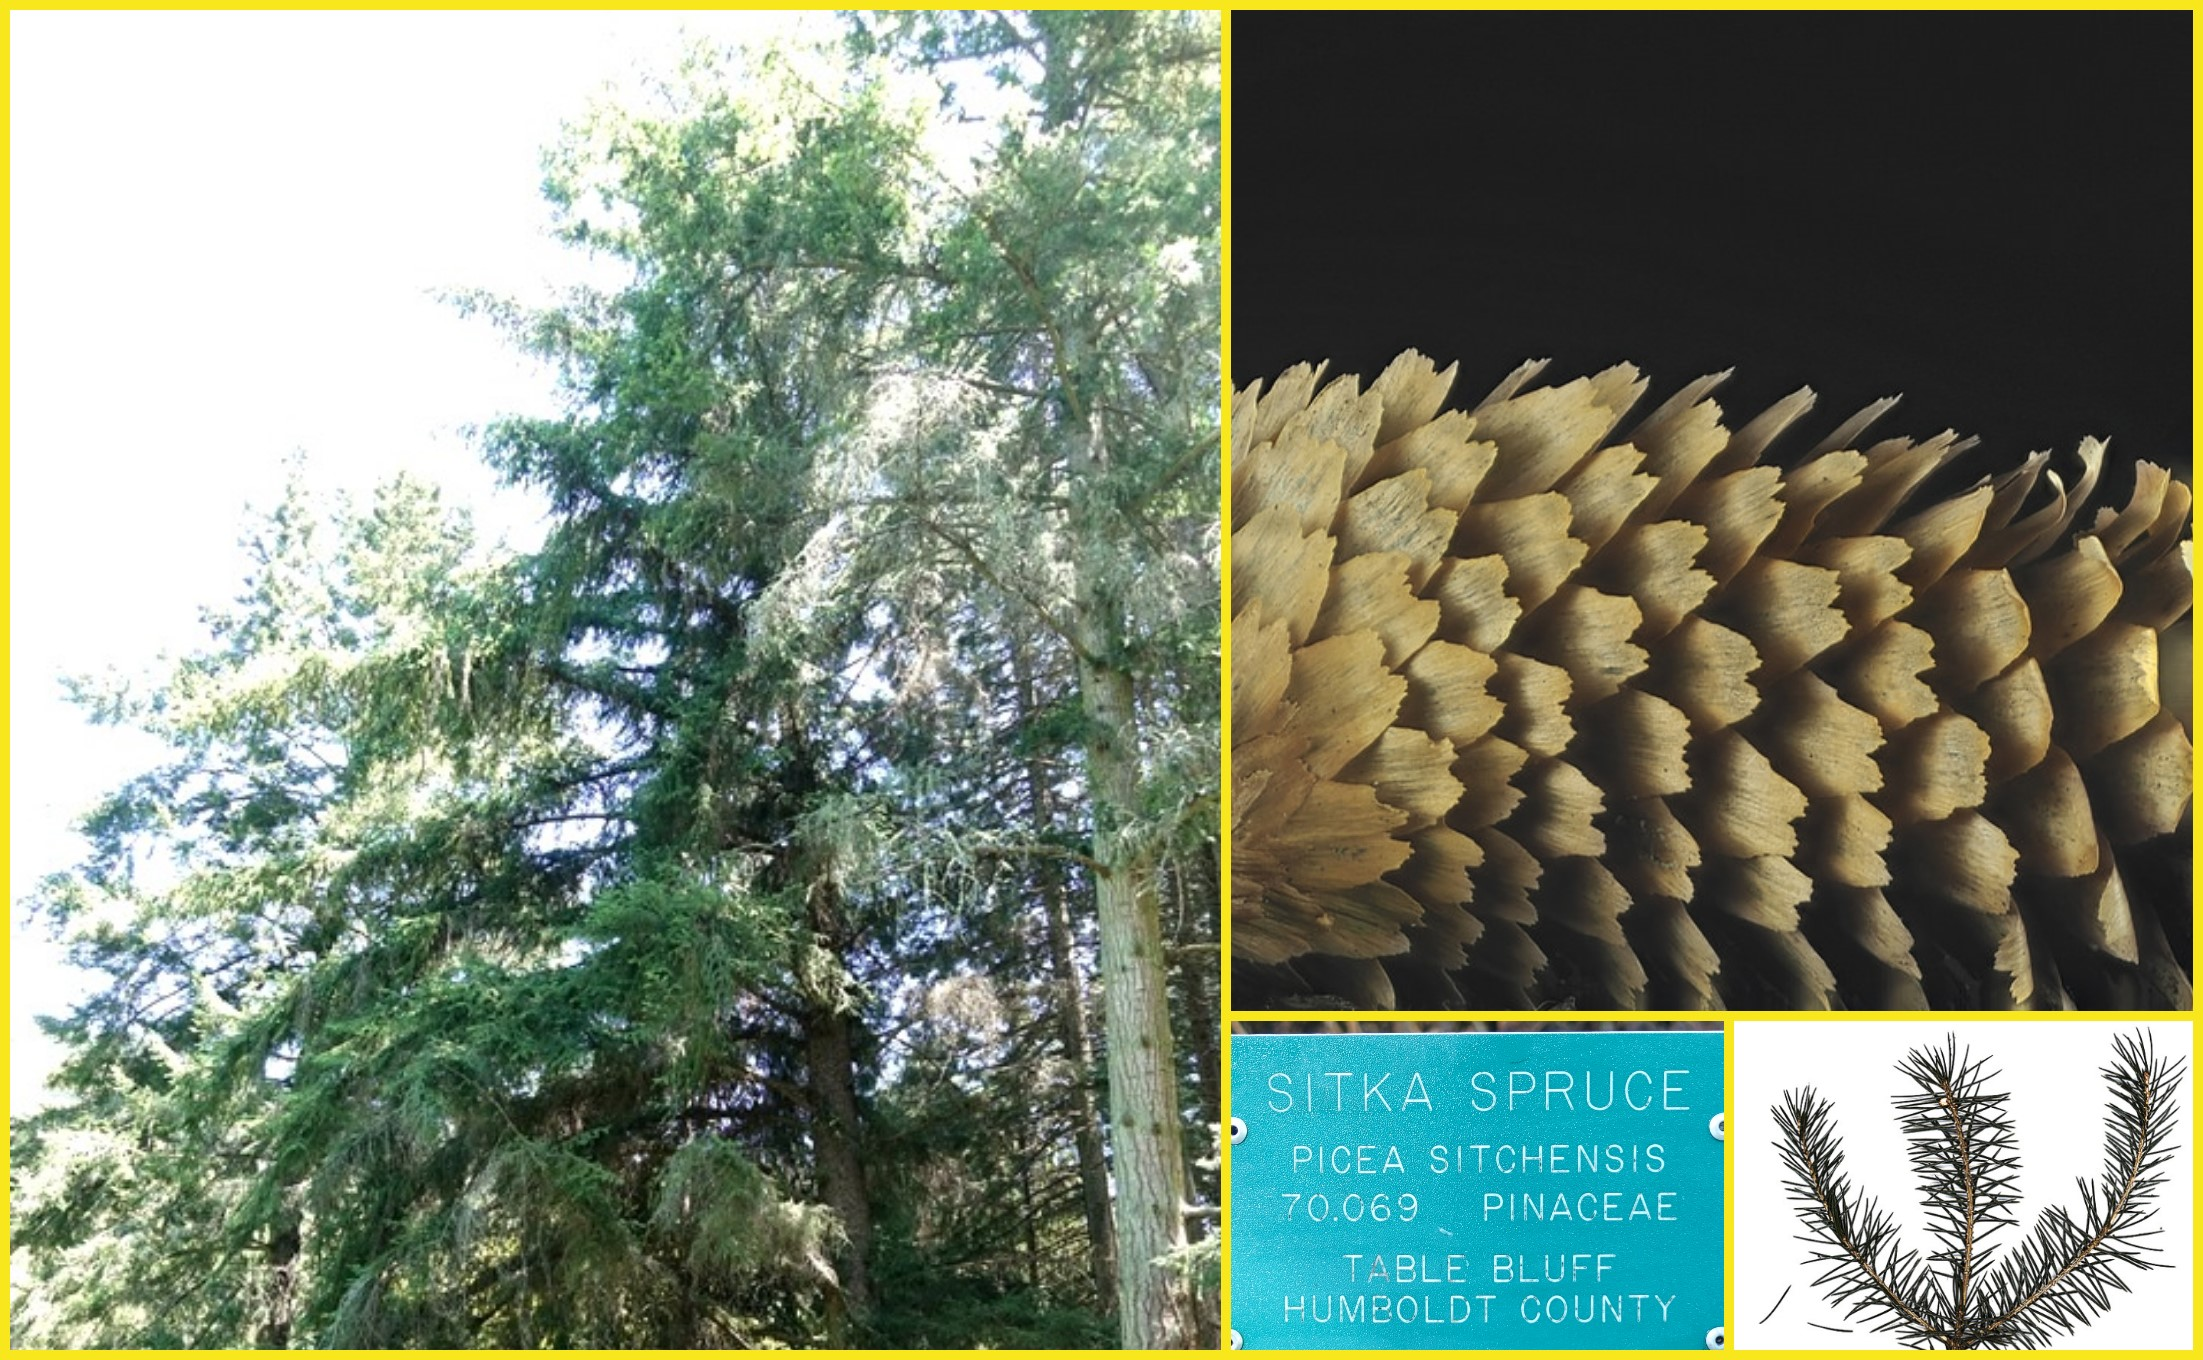 Picea sitchensis (Sitka Spruce)